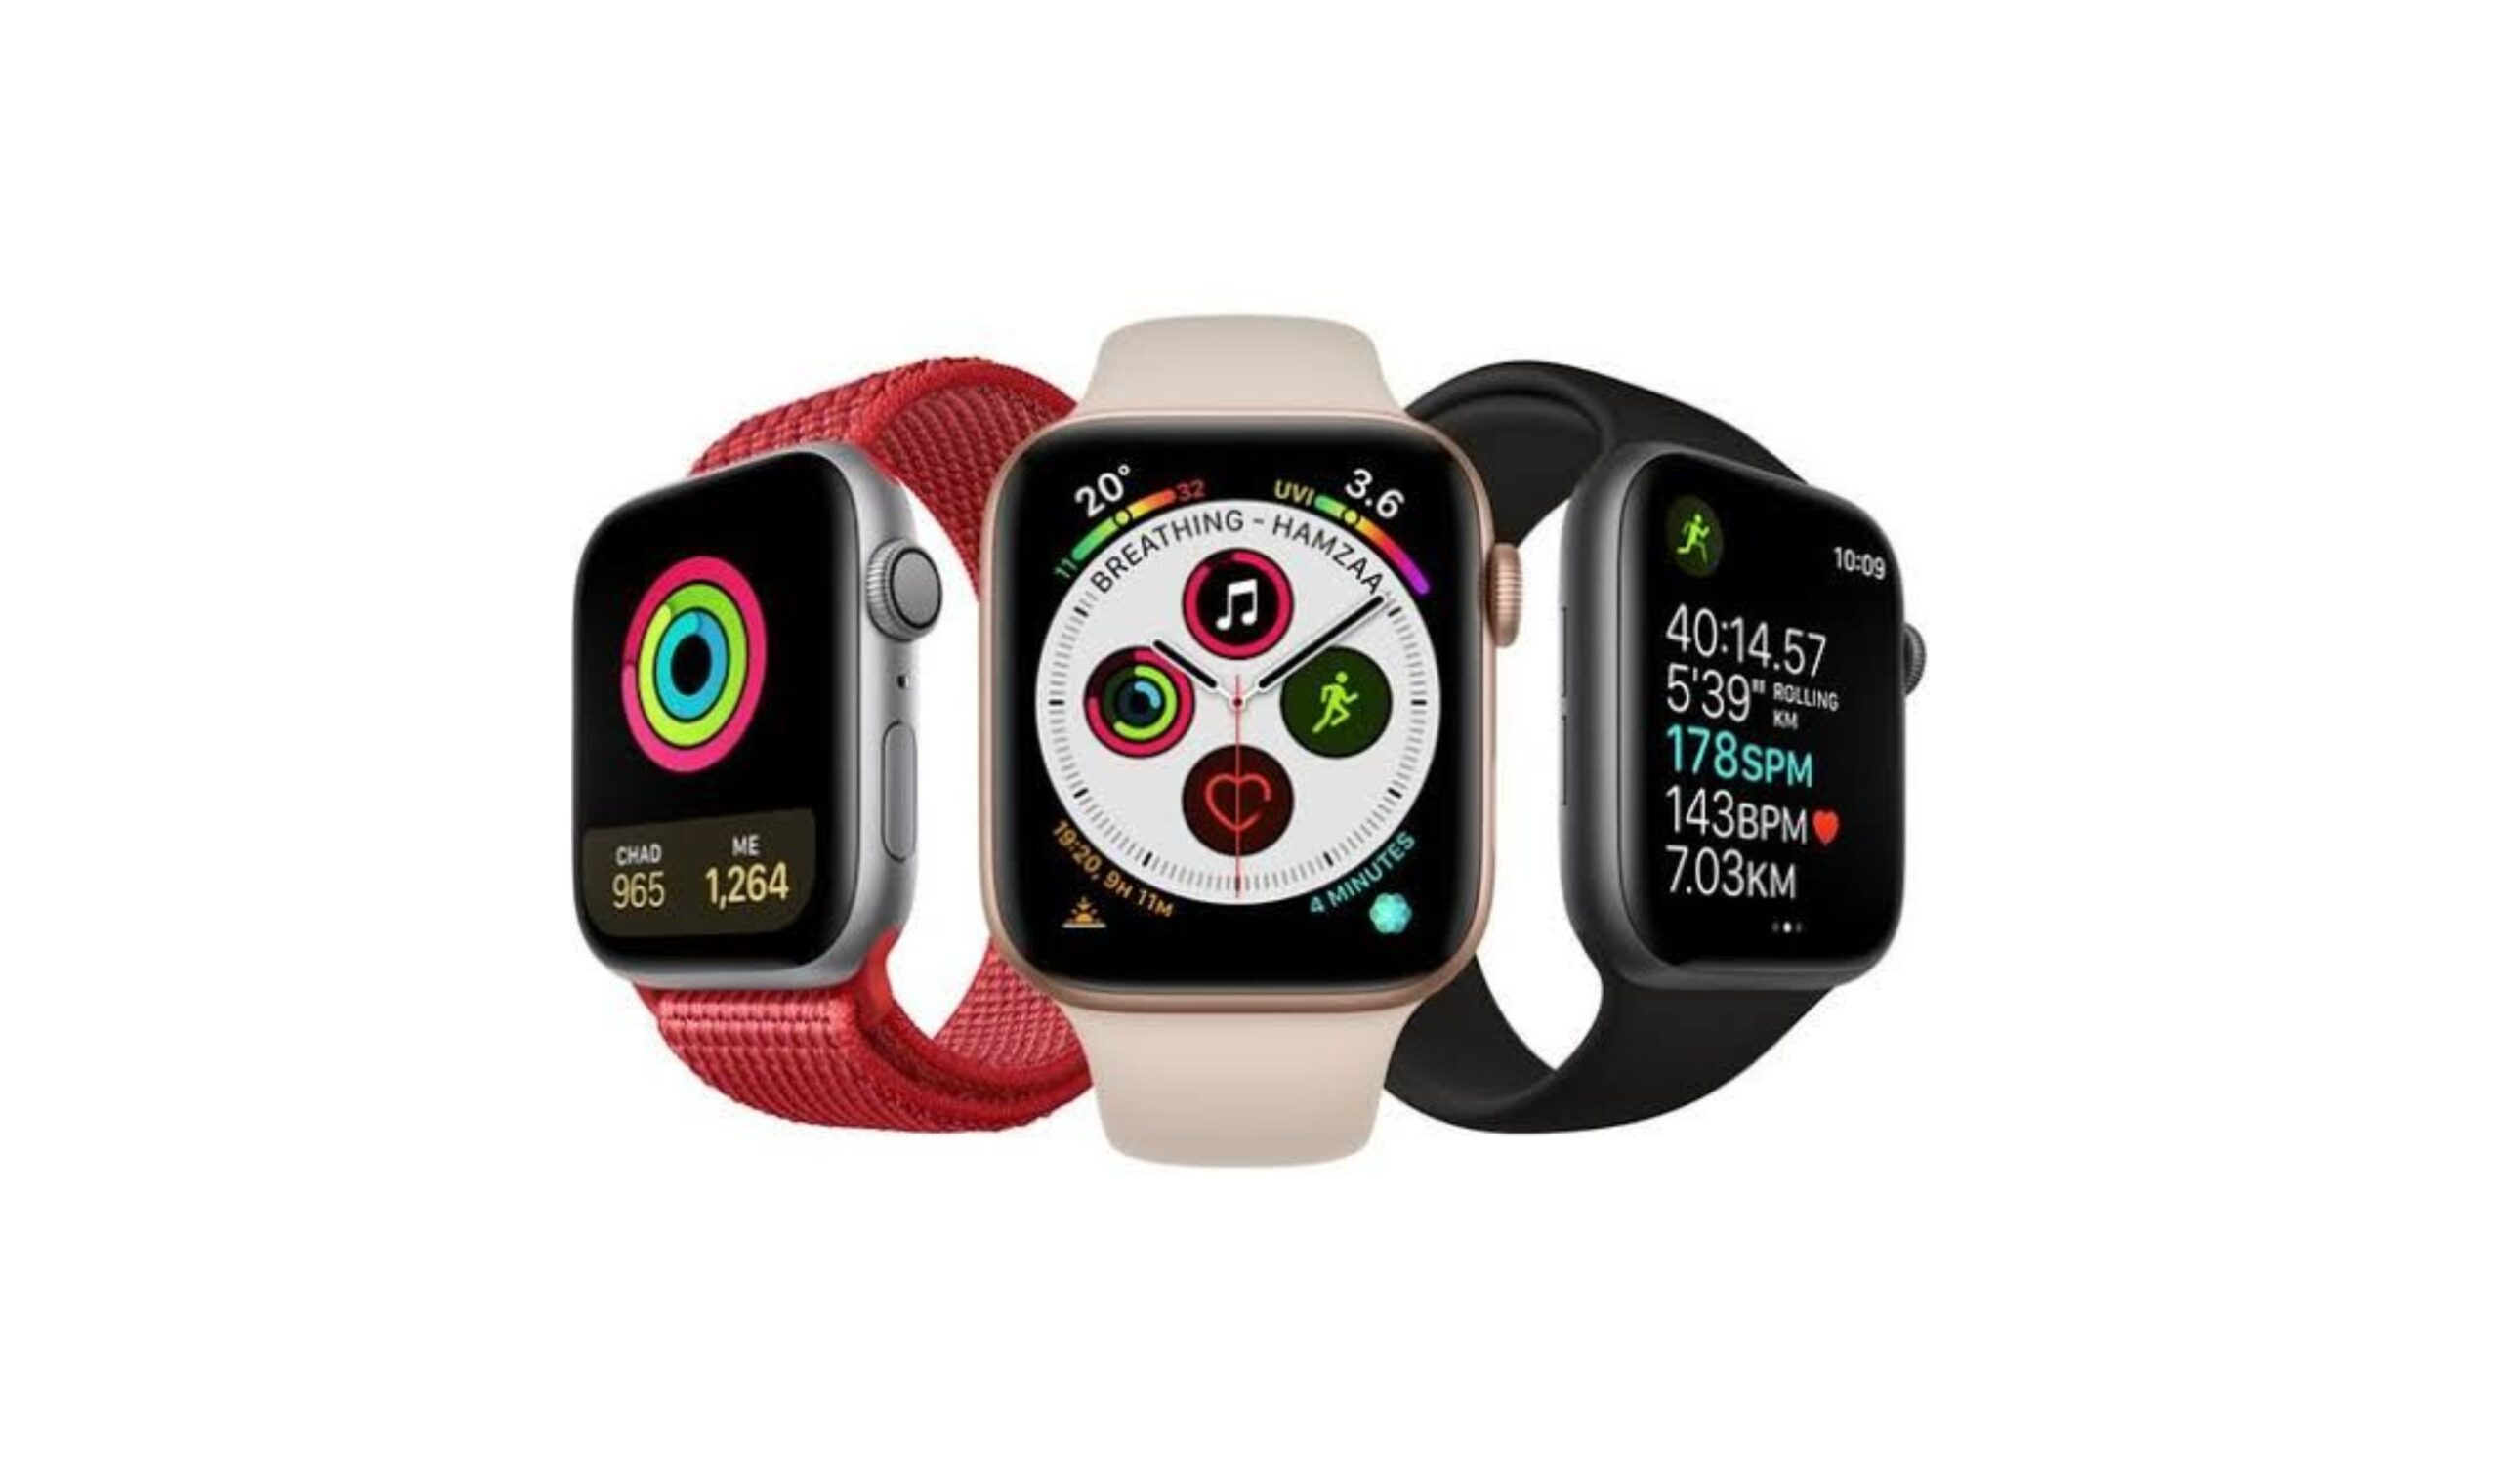 Report: Apple Watch Series 6 will support blood oxygen level monitoring and sleep tracking